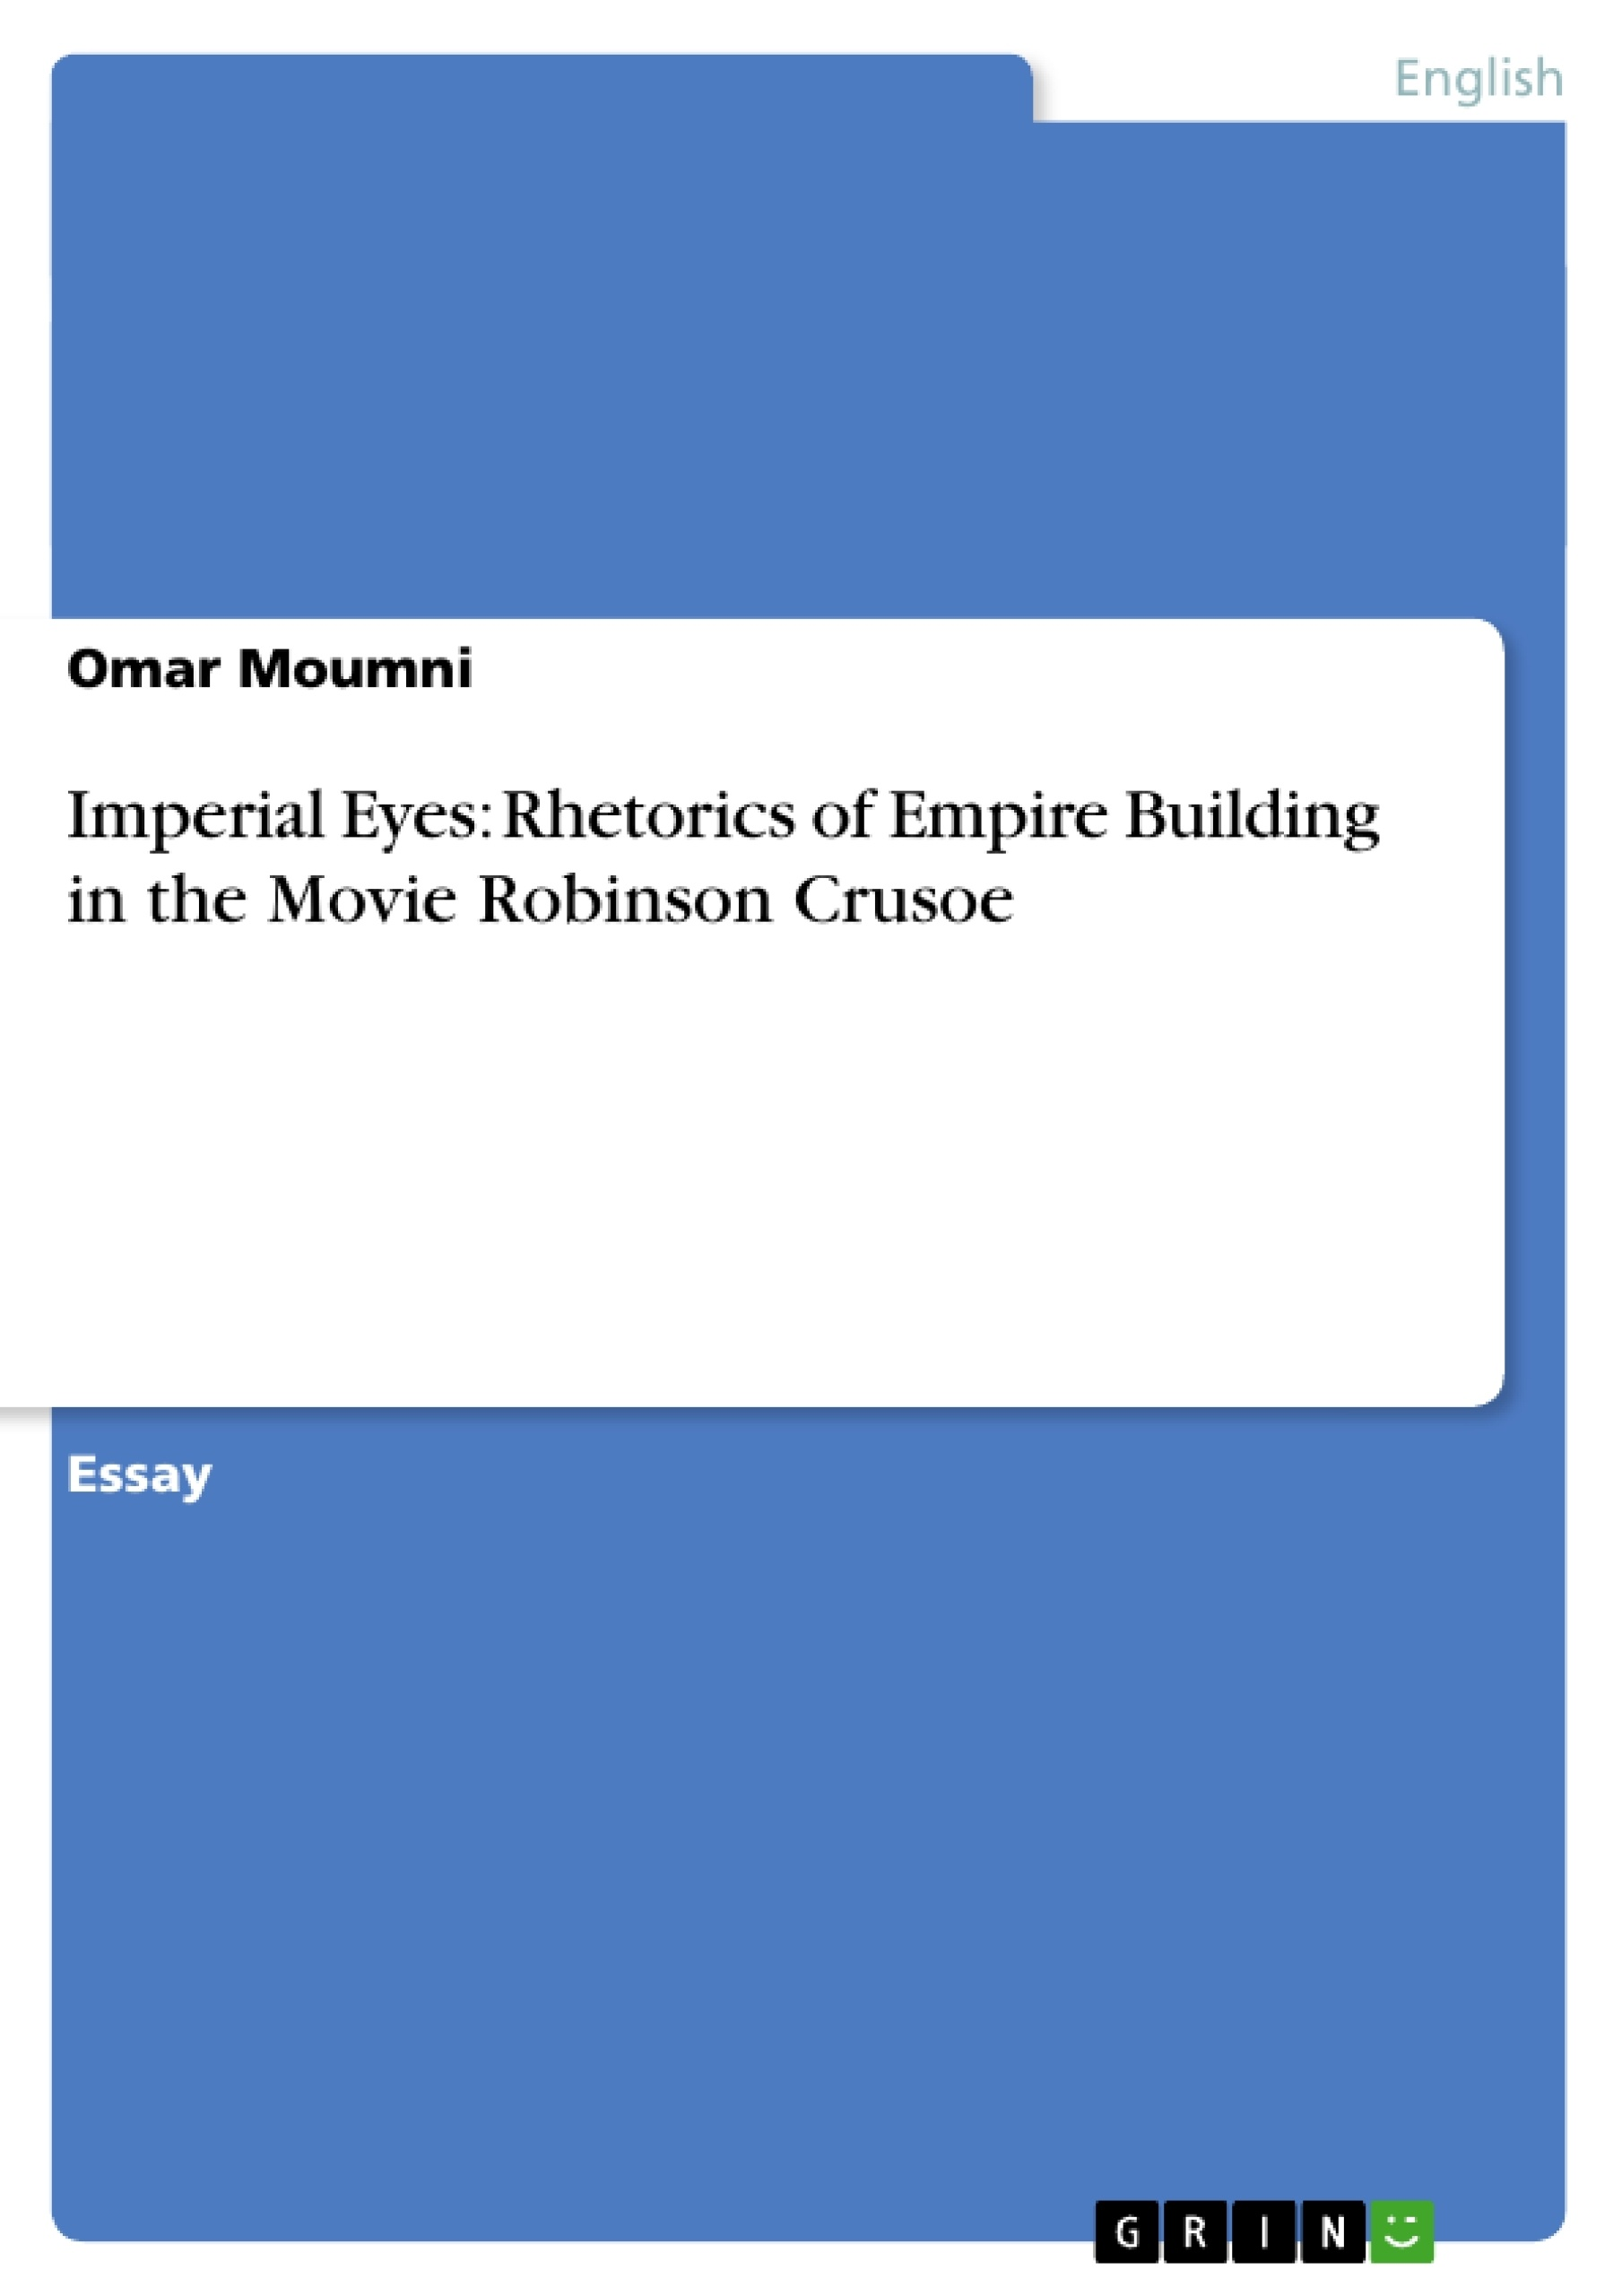 Title: Imperial Eyes: Rhetorics of Empire Building in the Movie Robinson Crusoe